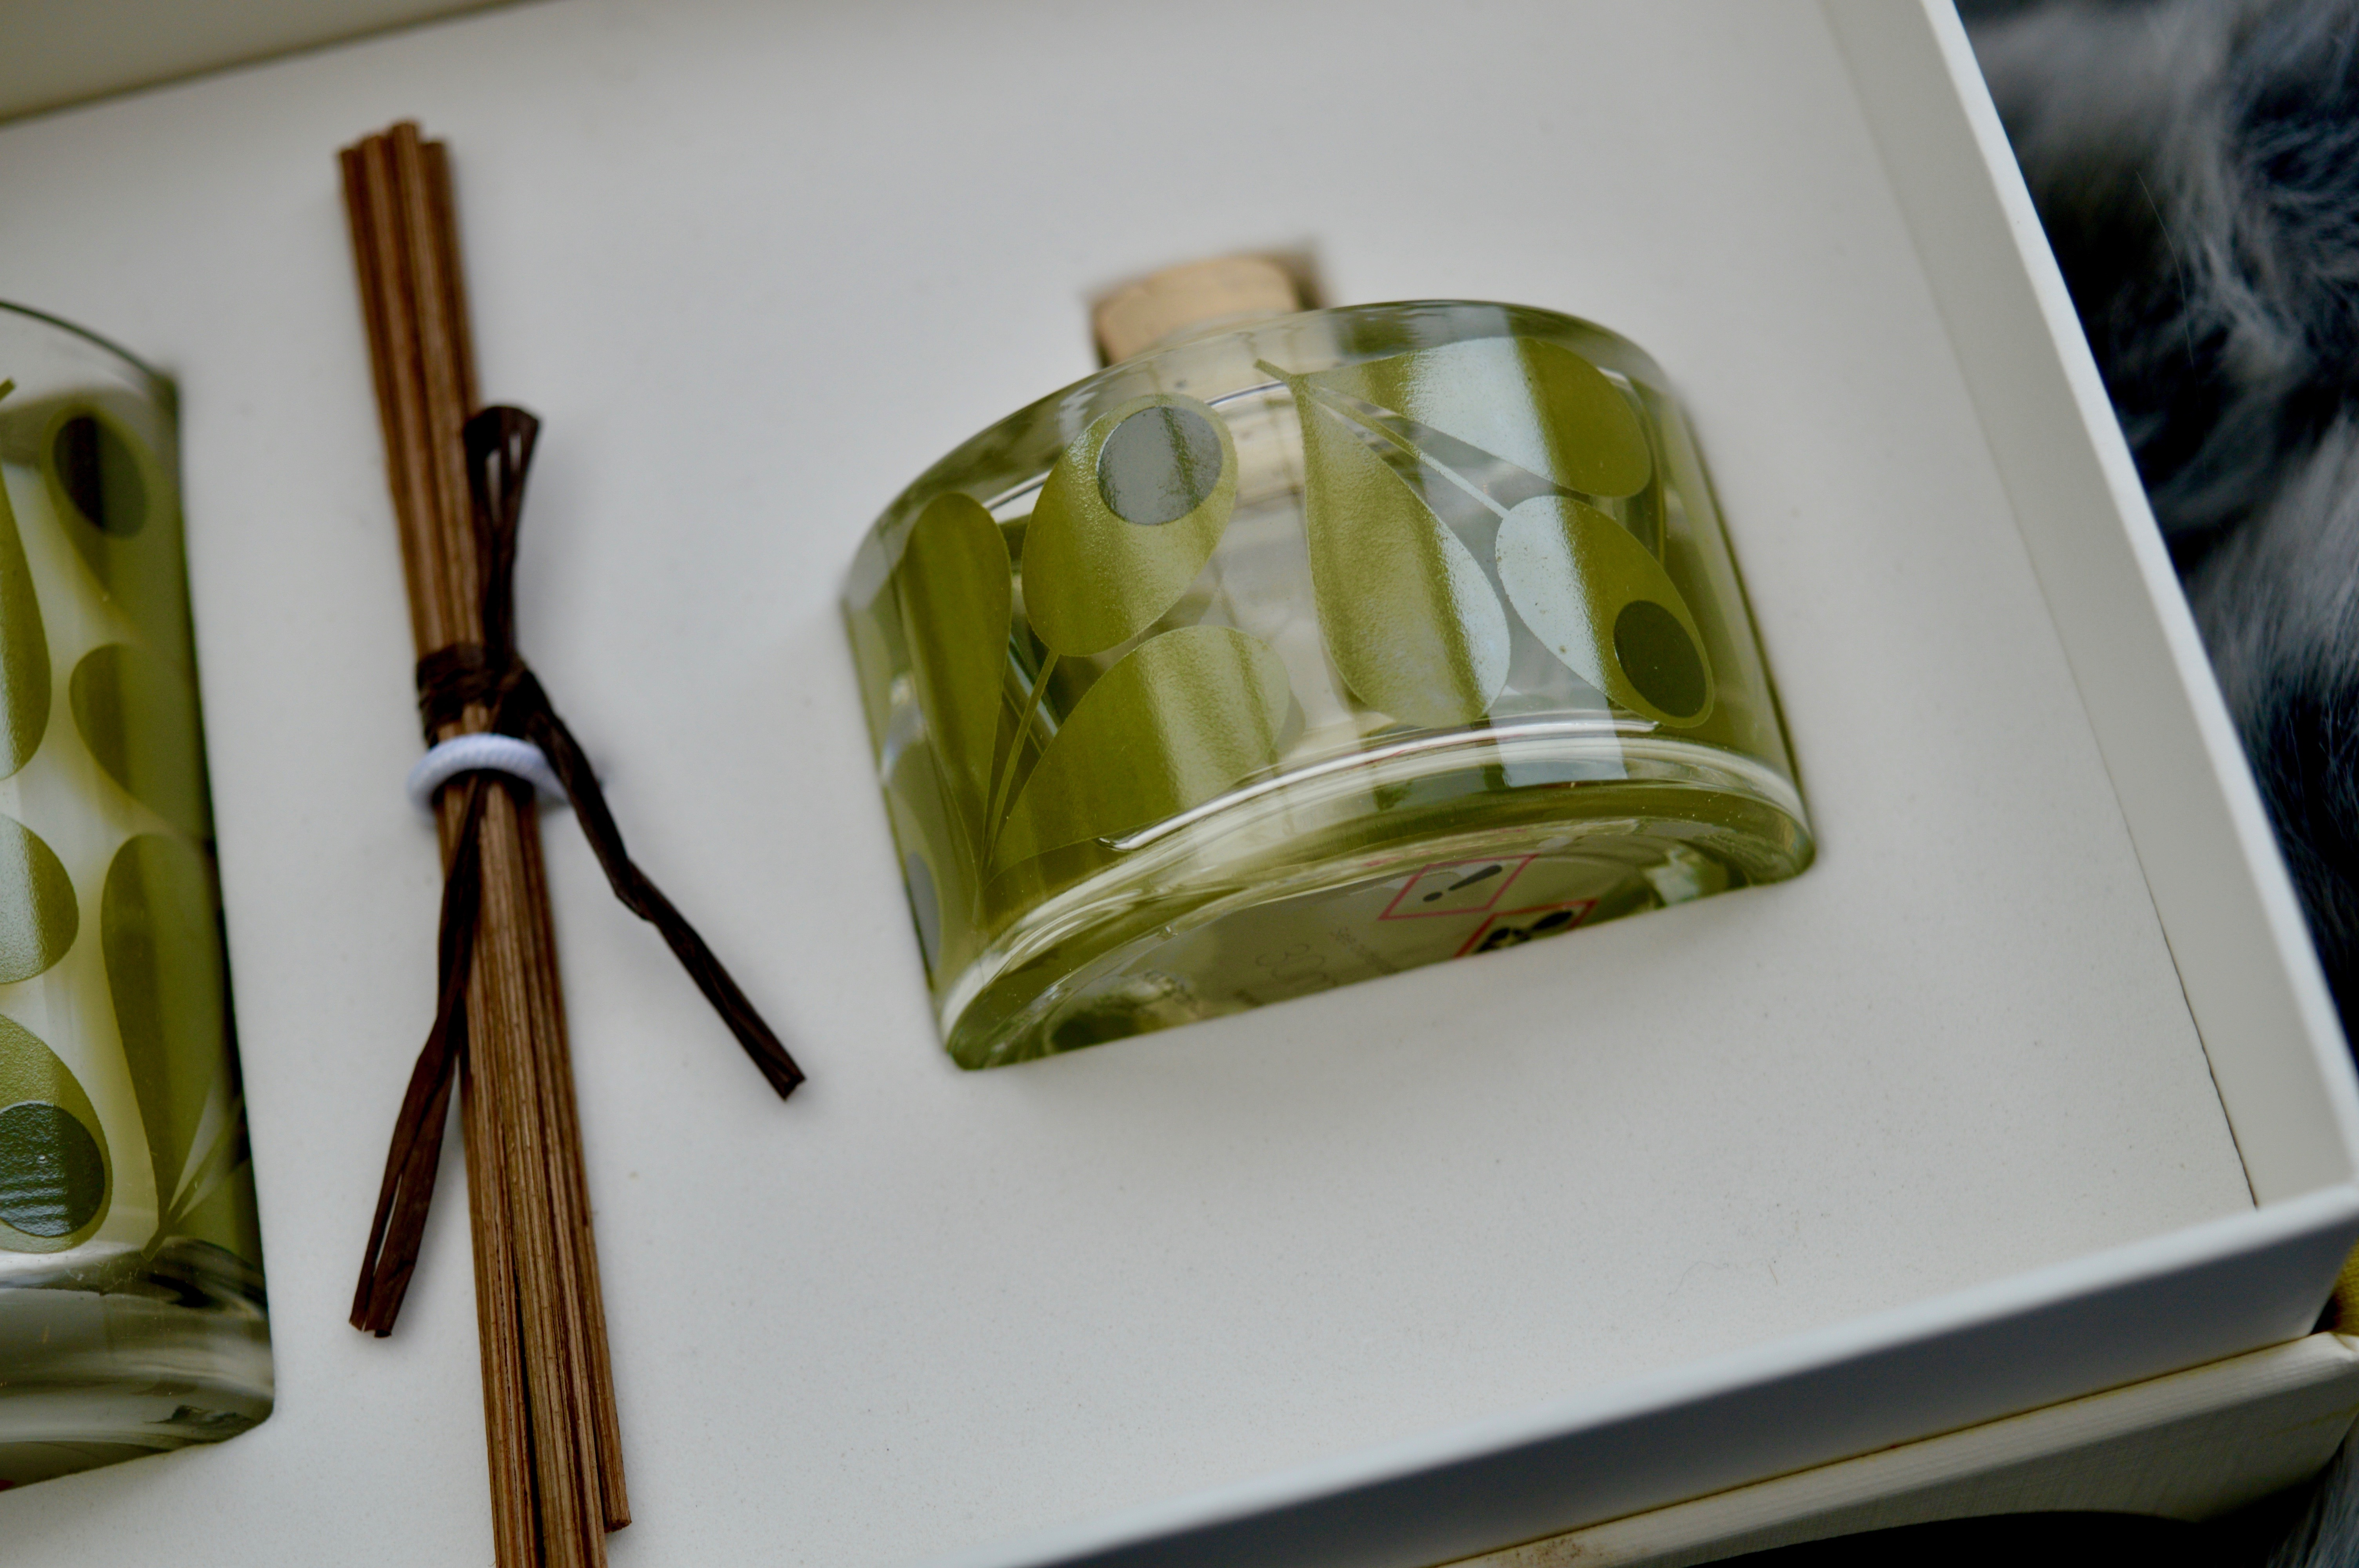 Orla Kiely Fig Tree Reed Diffuser & Candle Set   Home Interiors Gift   Christmas Gift Guide - What to buy your Grandma   Elle Blonde Luxury Lifestyle Destination Blog